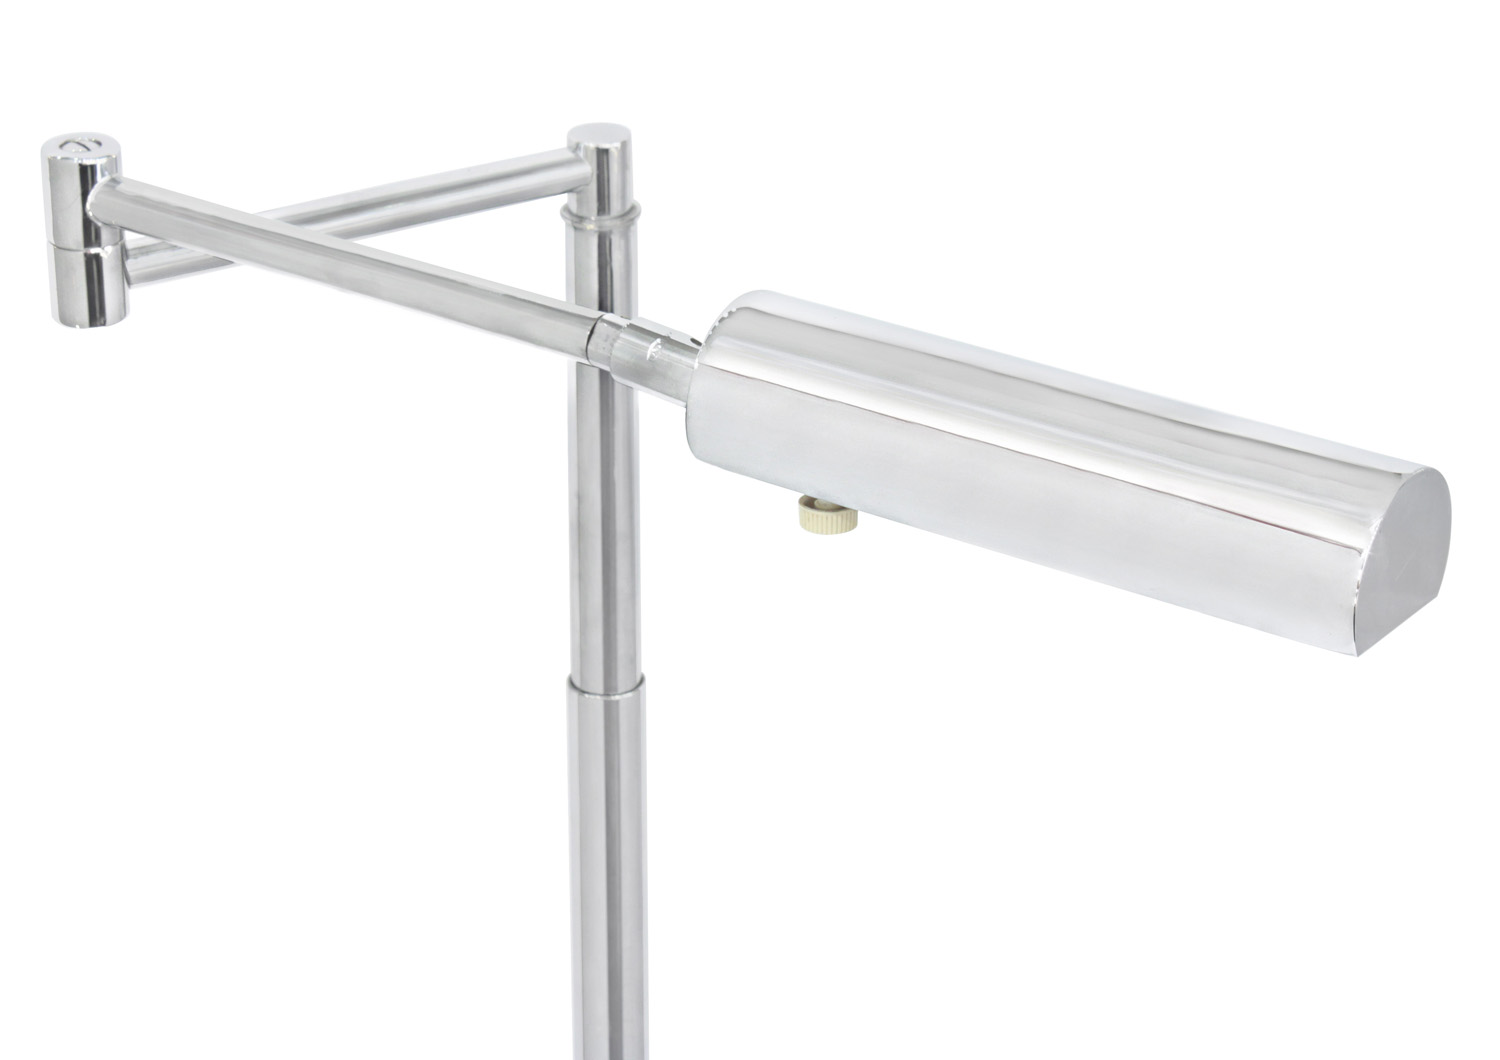 Koch&Lowy 45 chrome swingarm read floorlamp163 detail2 hires.jpg